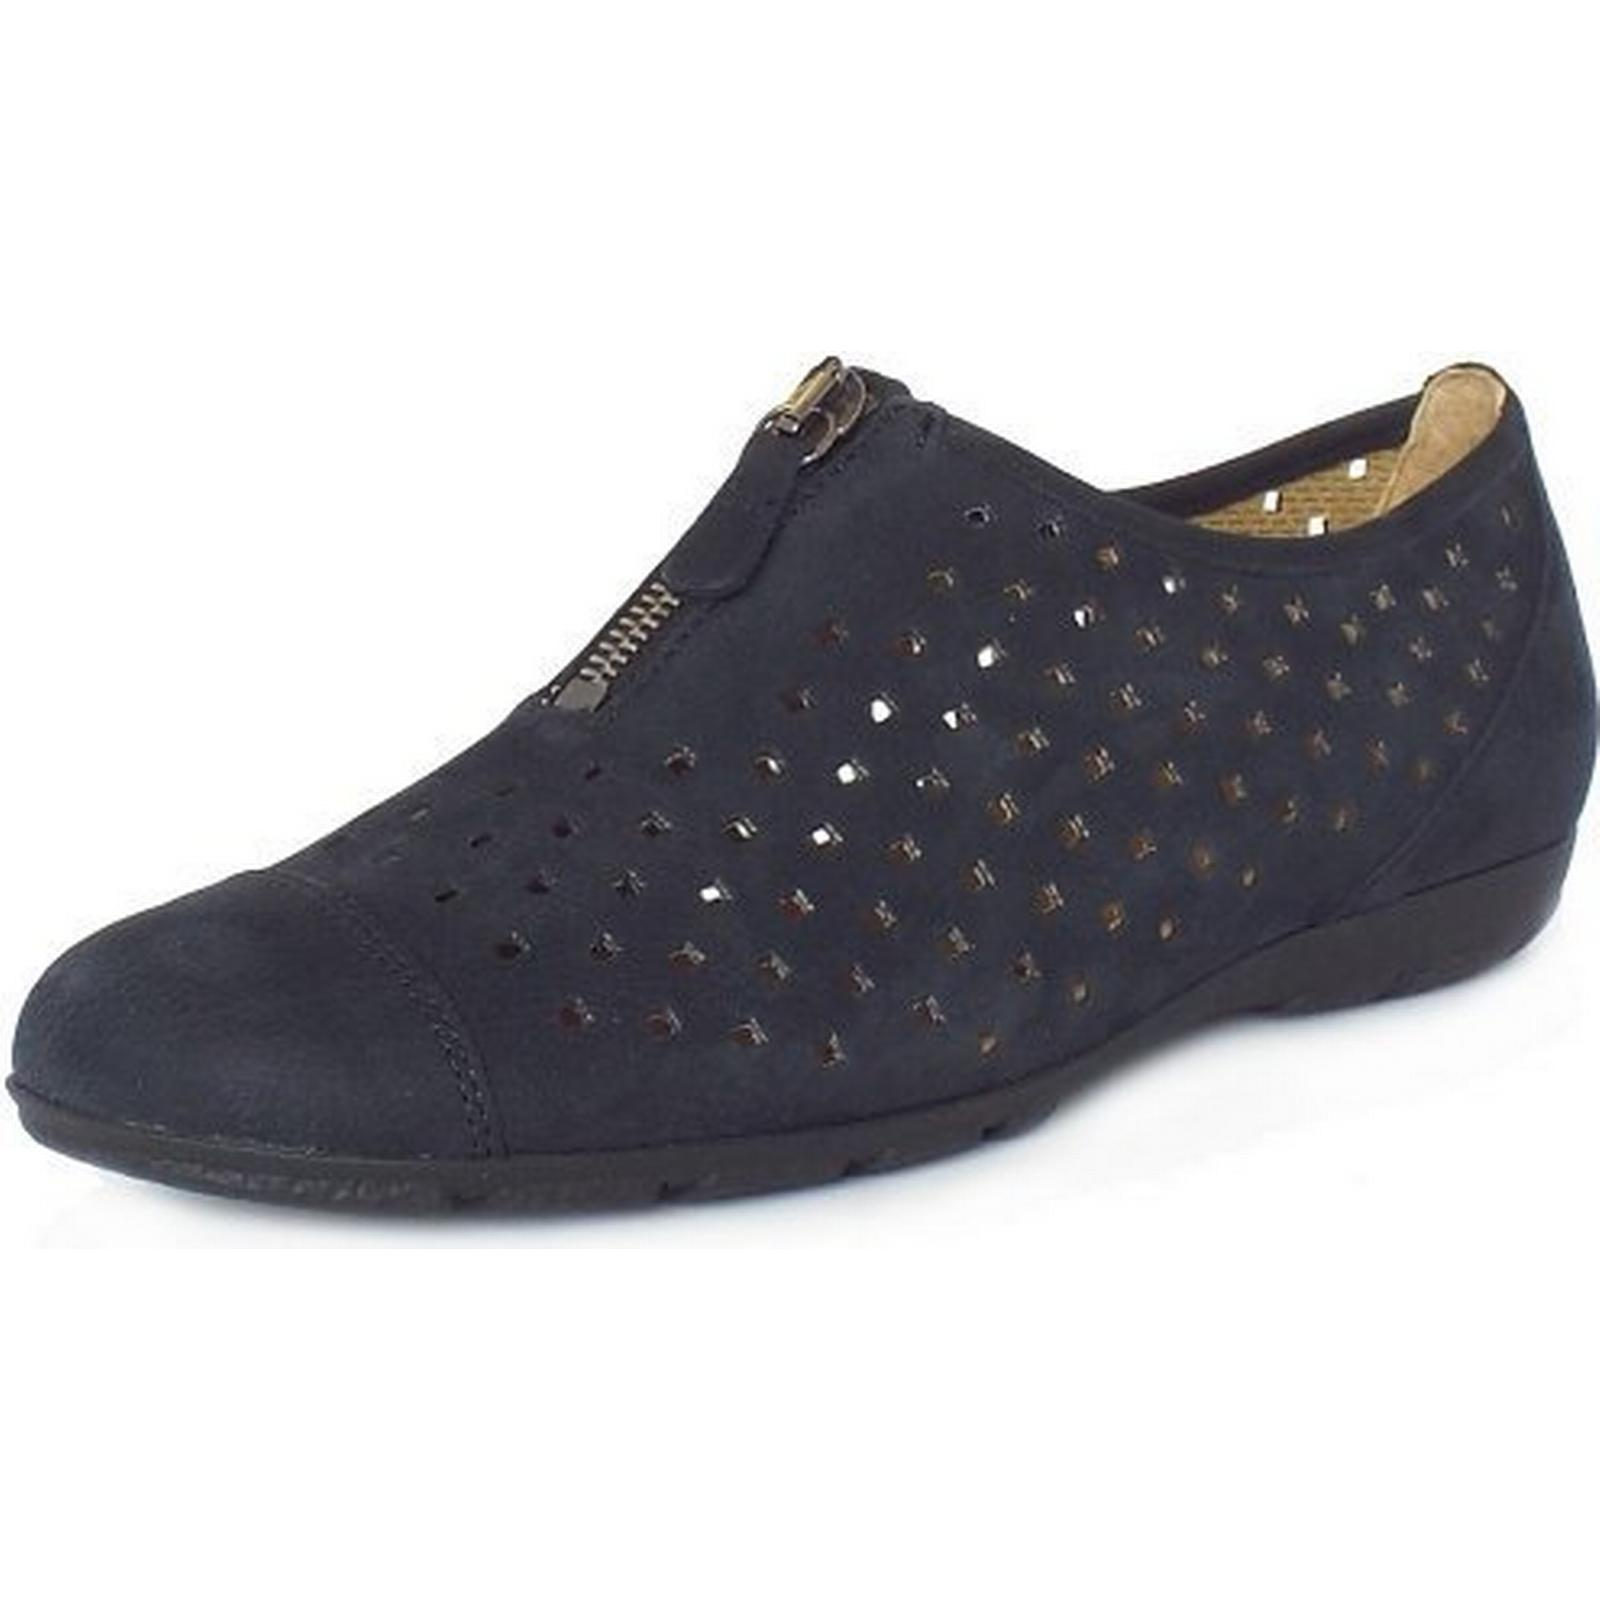 Gabor GIBSON GABOR LADIES SHOES SHOES LADIES Size: 7.5, Colour: NAVY 5f4175